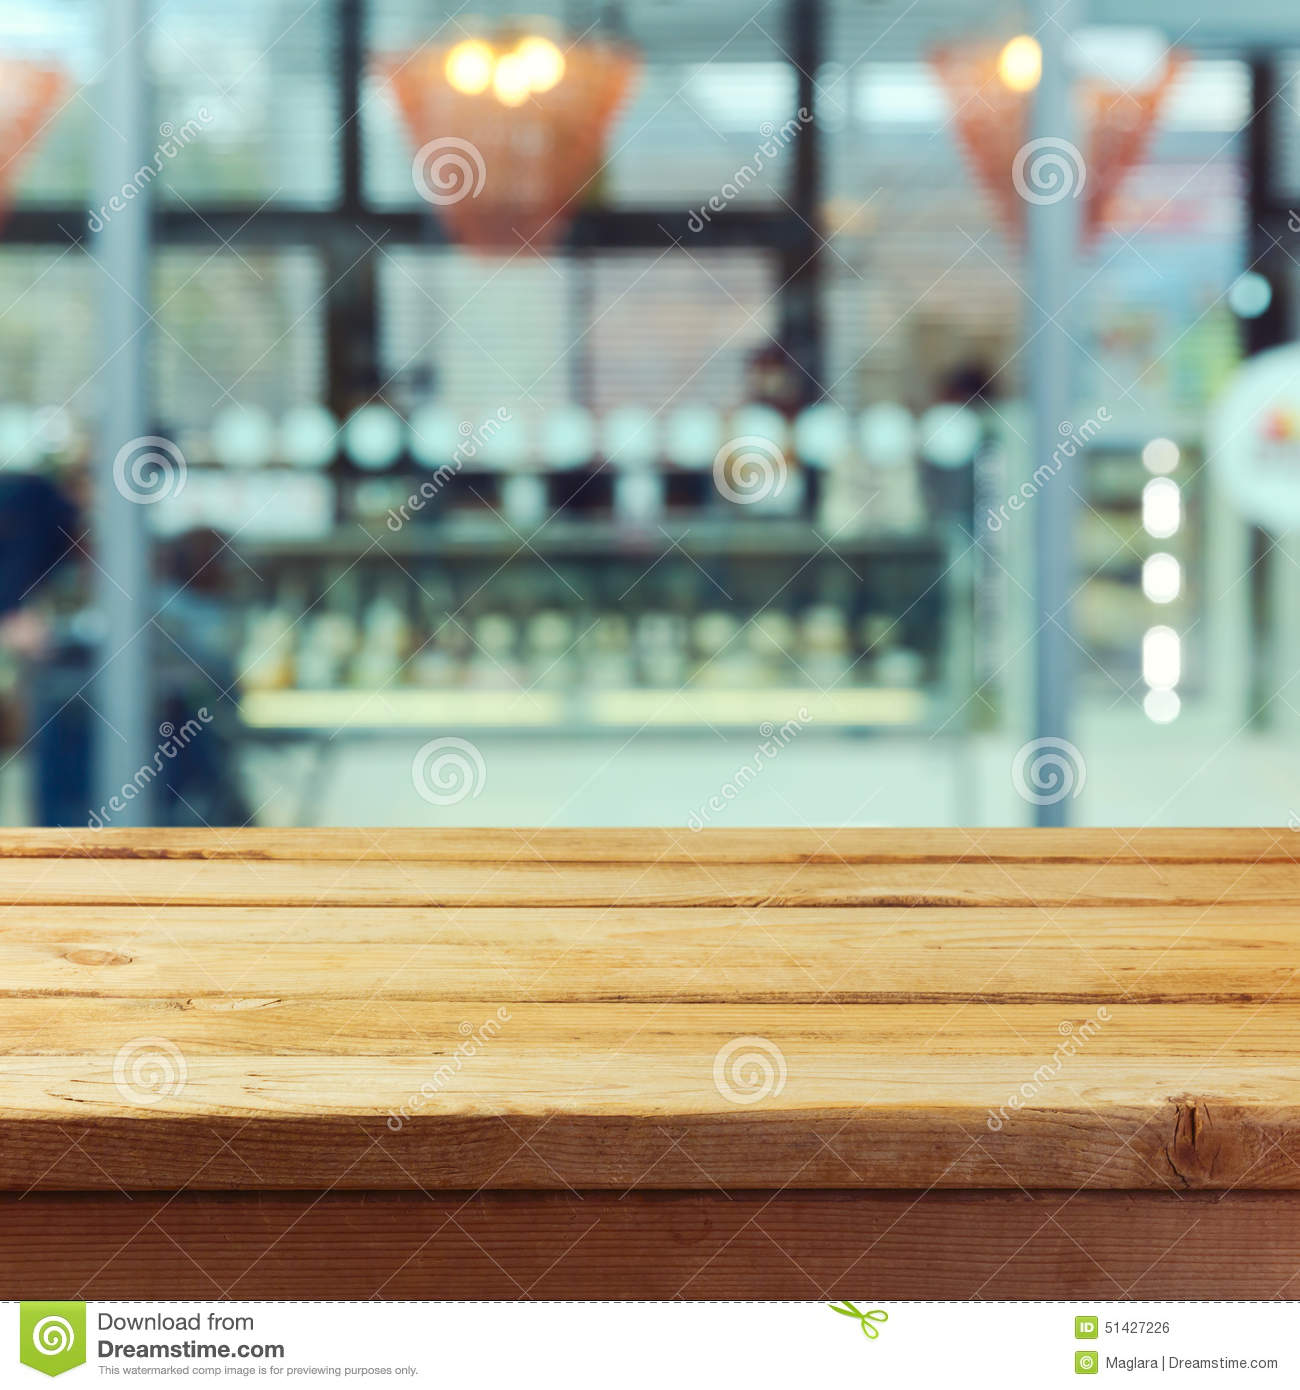 Wooden Table Mock Up Template Background For Product ...